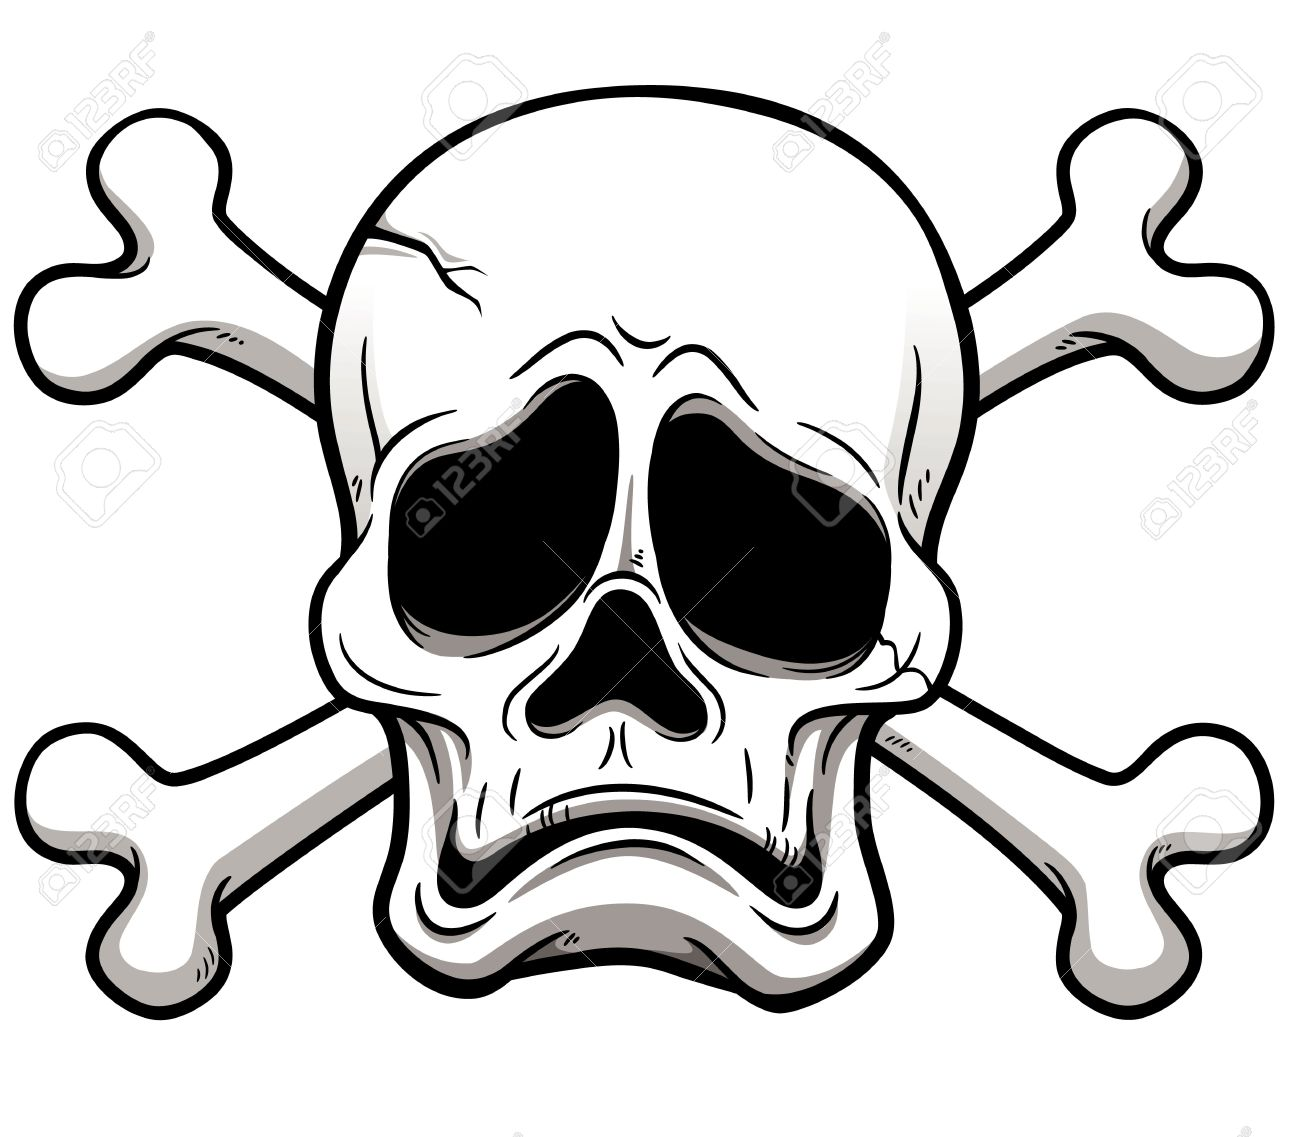 1300x1137 Illustration Of Skull And Crossbones Royalty Free Cliparts